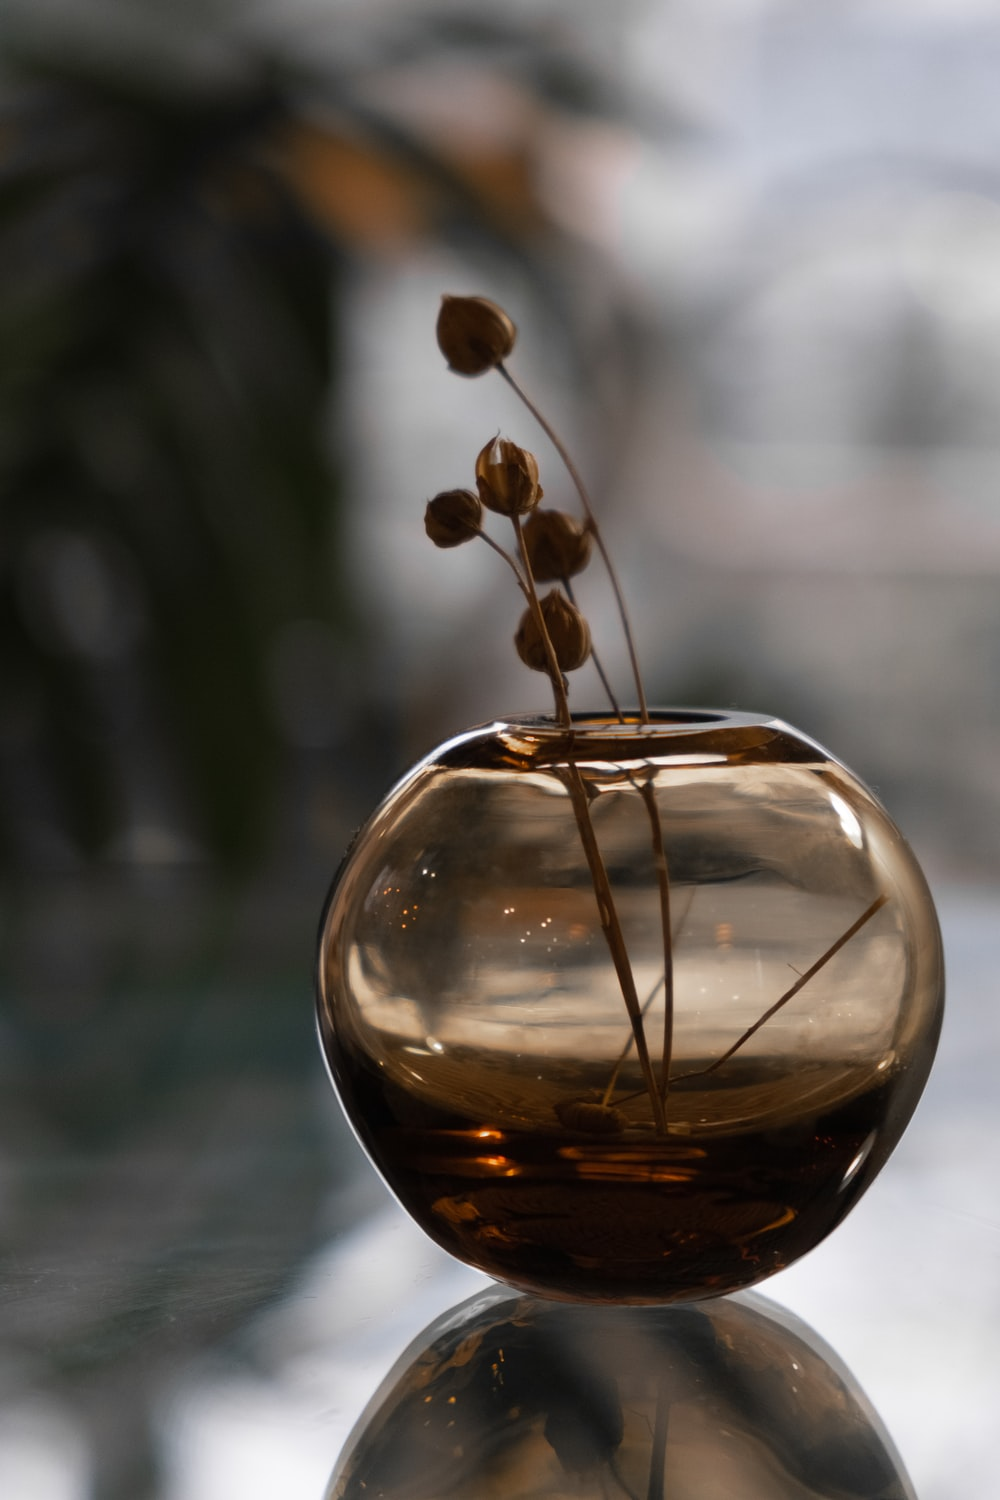 clear glass ball with brown plant